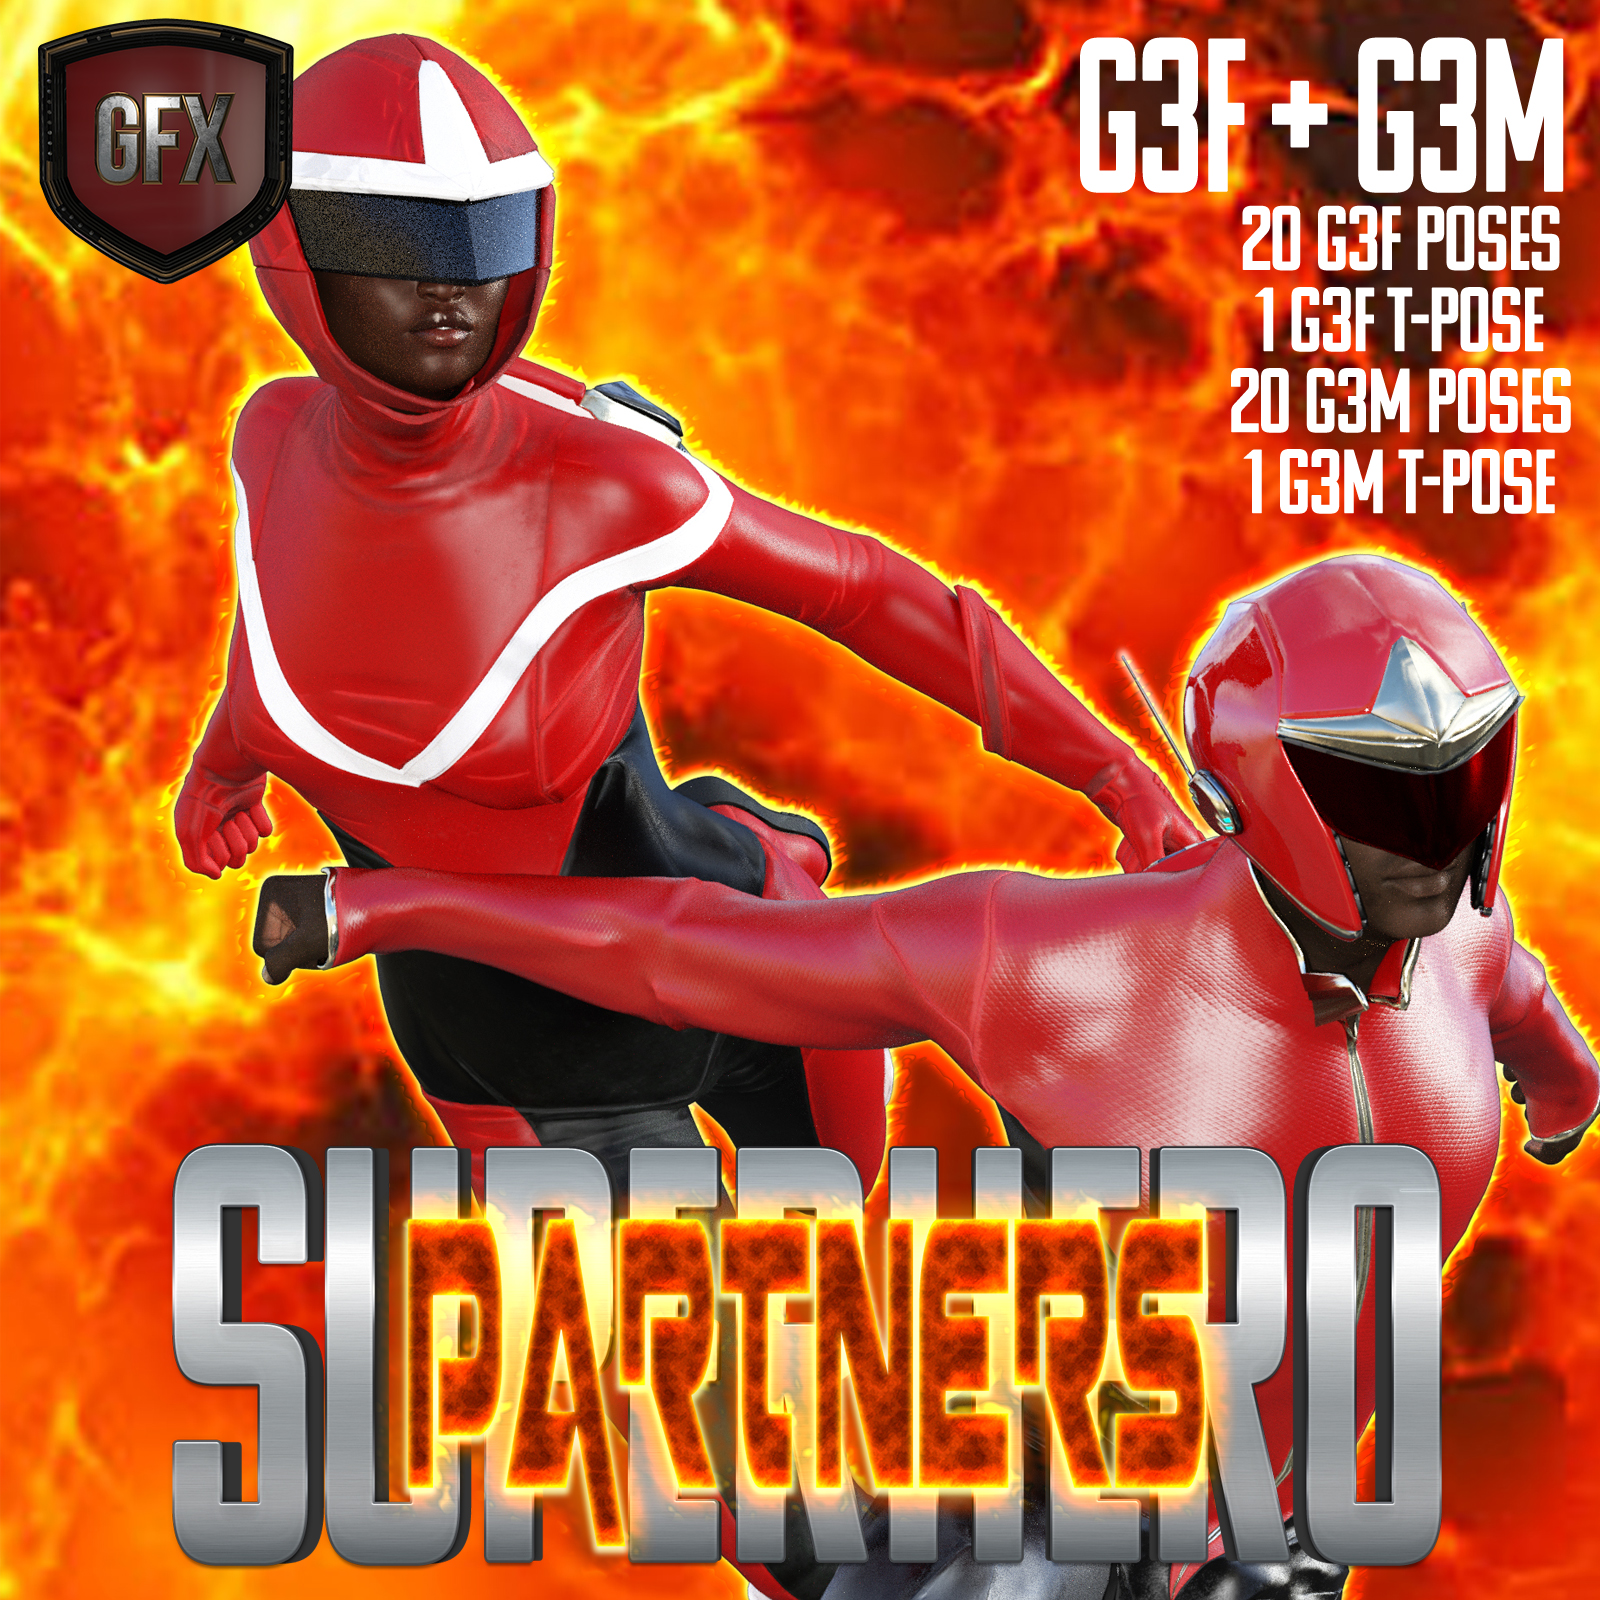 SuperHero Partners for G3F and G3M Volume 1